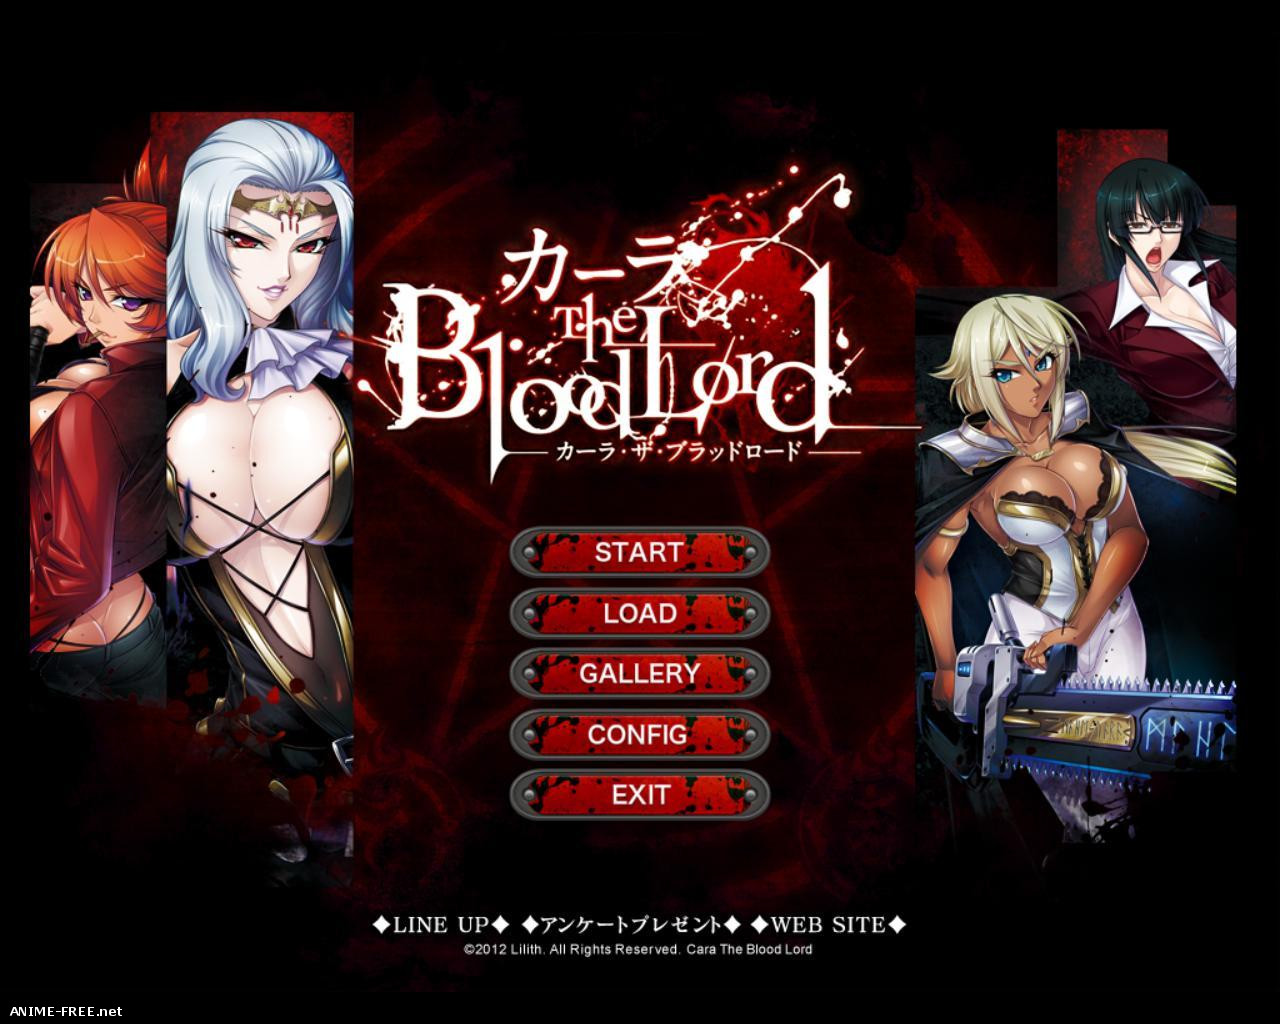 Cara the Blood lord / Кровавый лорд - Карла [2012] [Cen] [VN] [ENG,JAP] H-Game